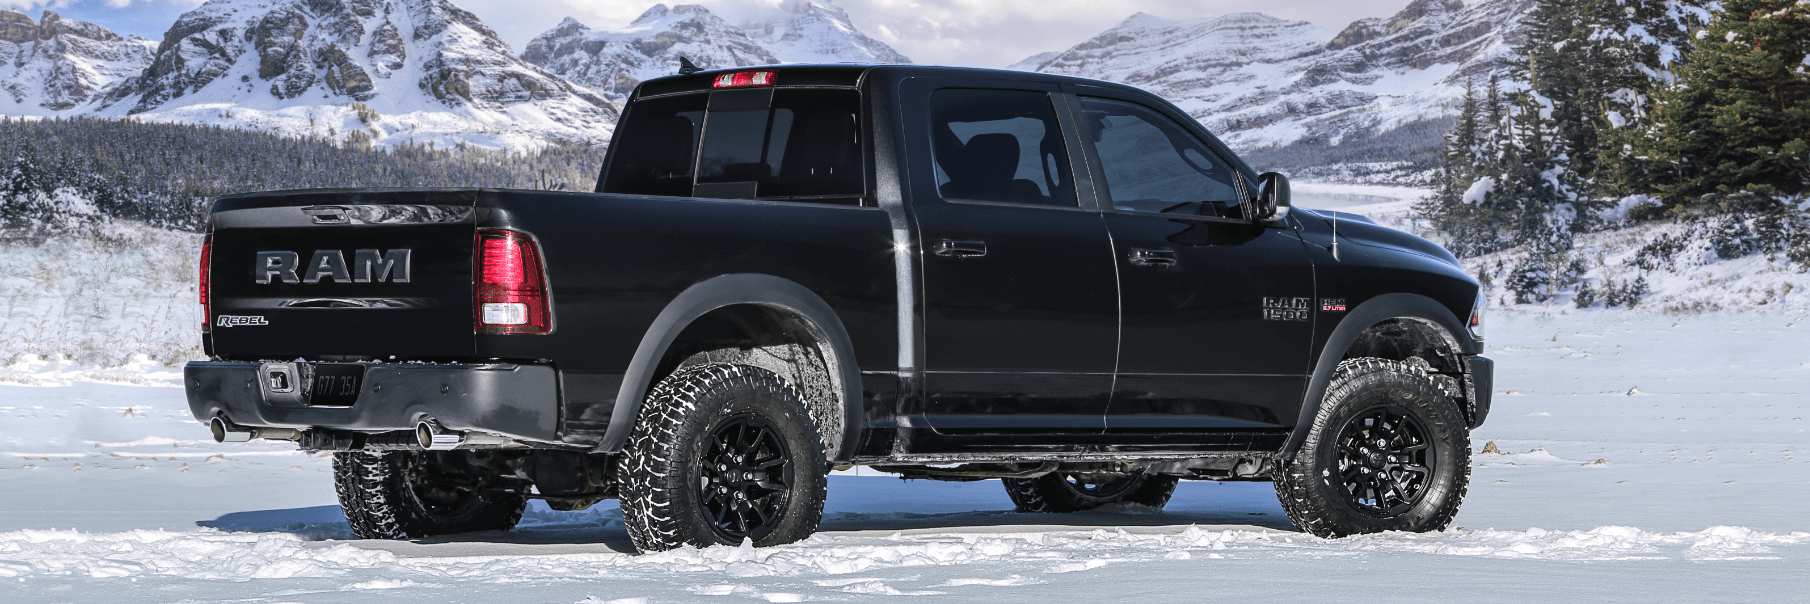 Right side back view of the Ram 1500 in winter